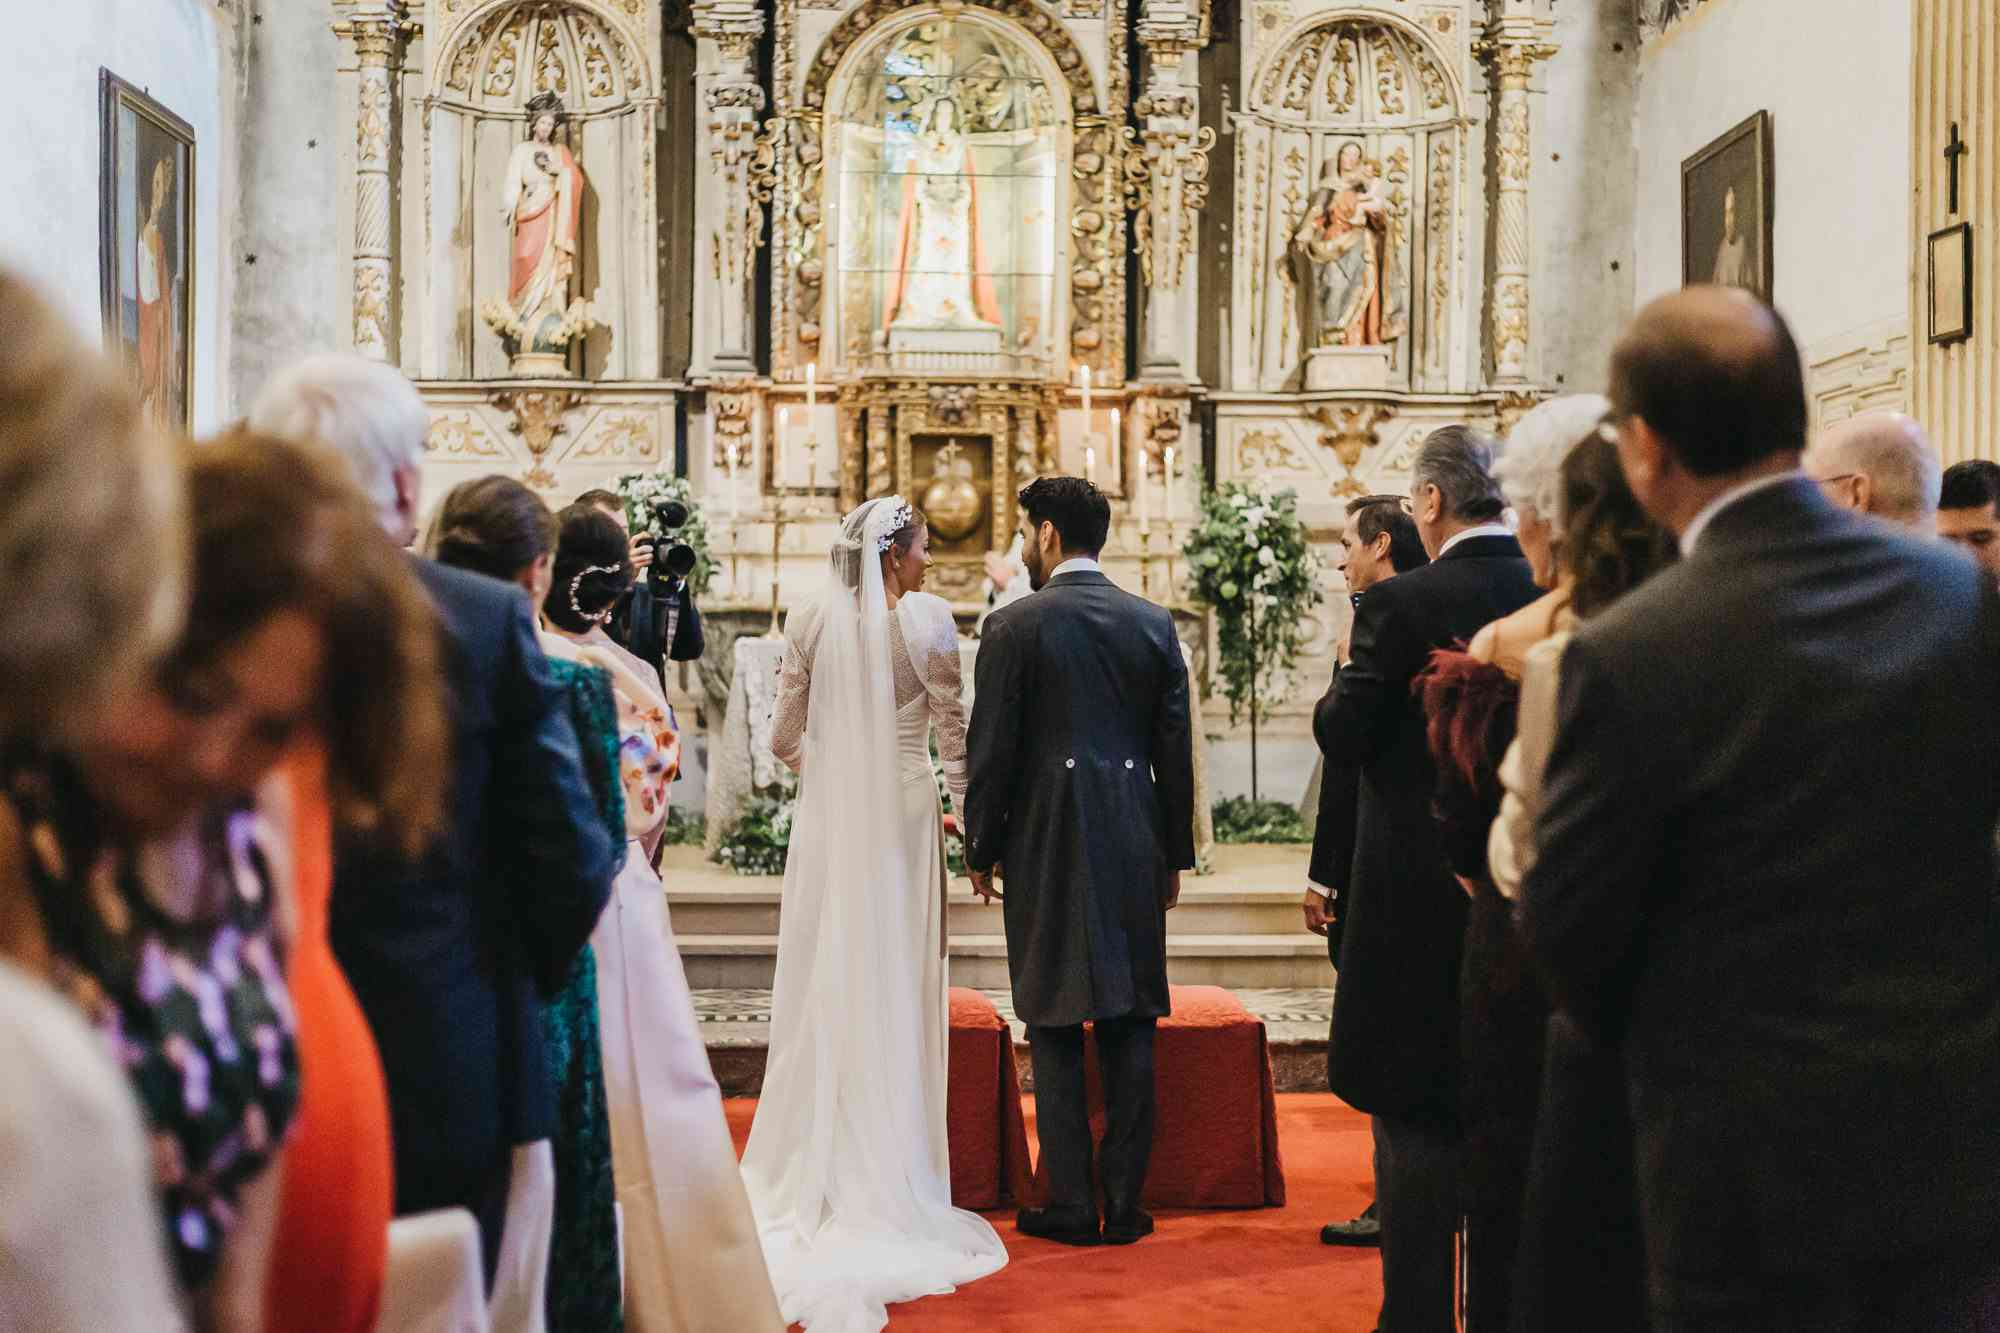 Bride and groom in church for Catholic wedding